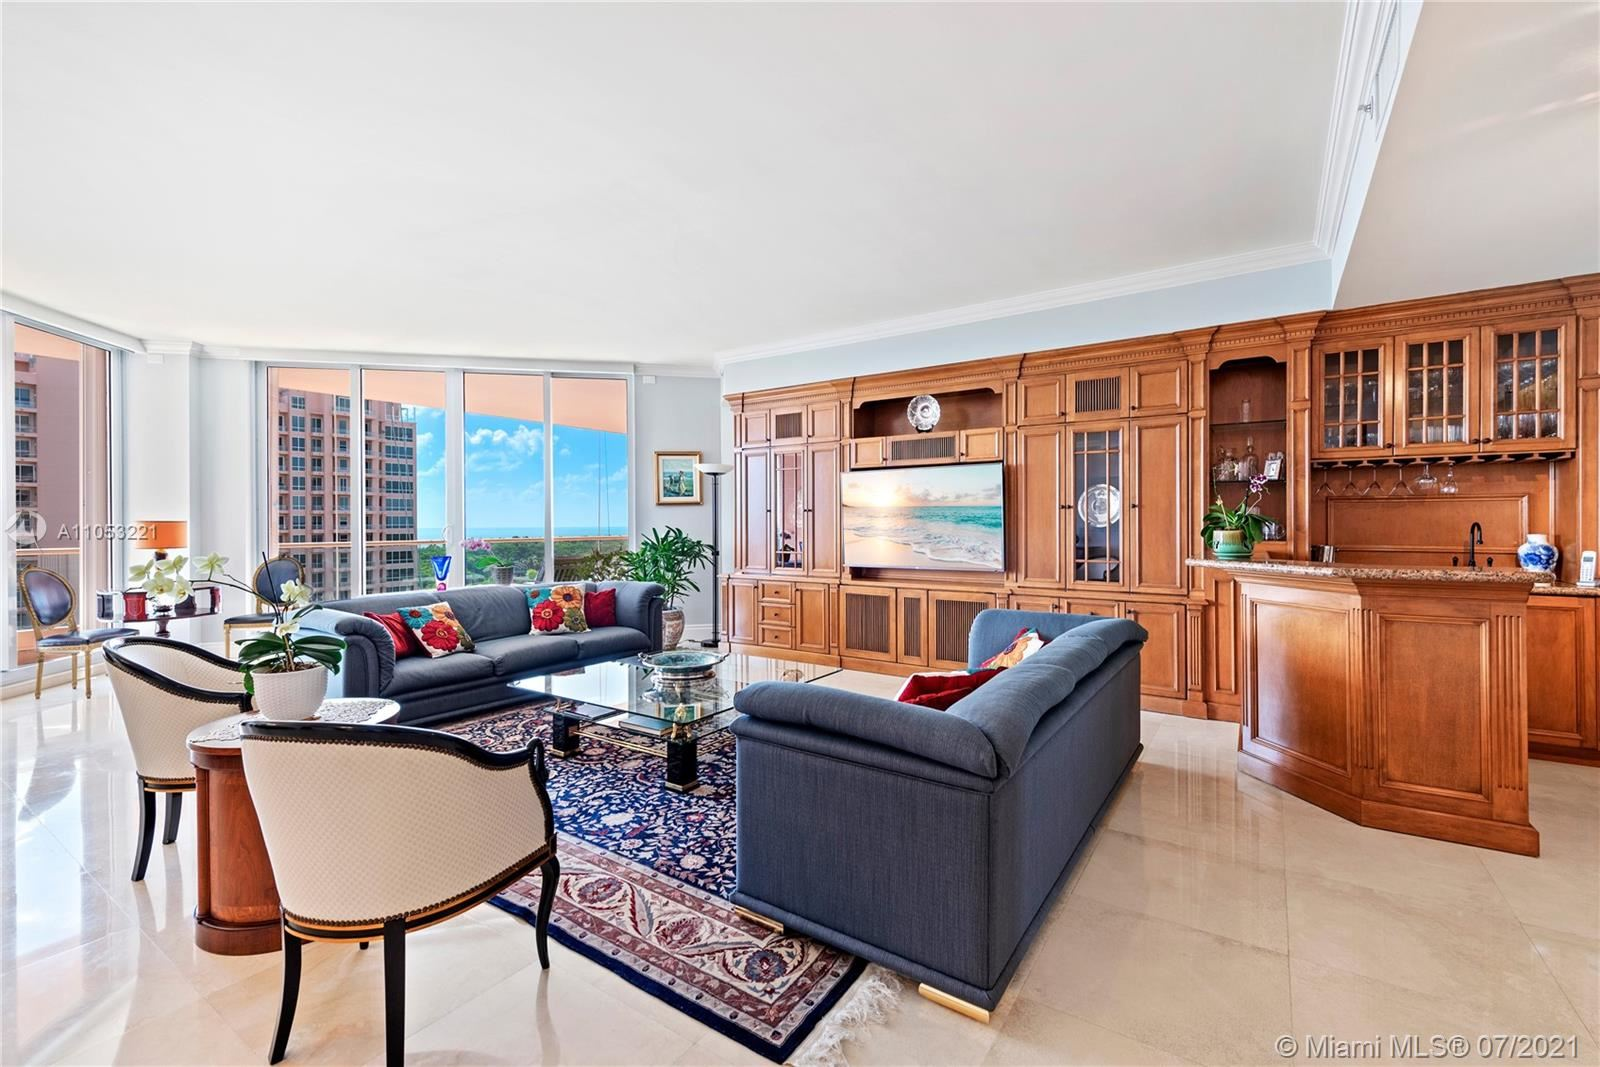 60 Edgewater Dr #11F, Coral Gables, FL 33133 - #: A11053221